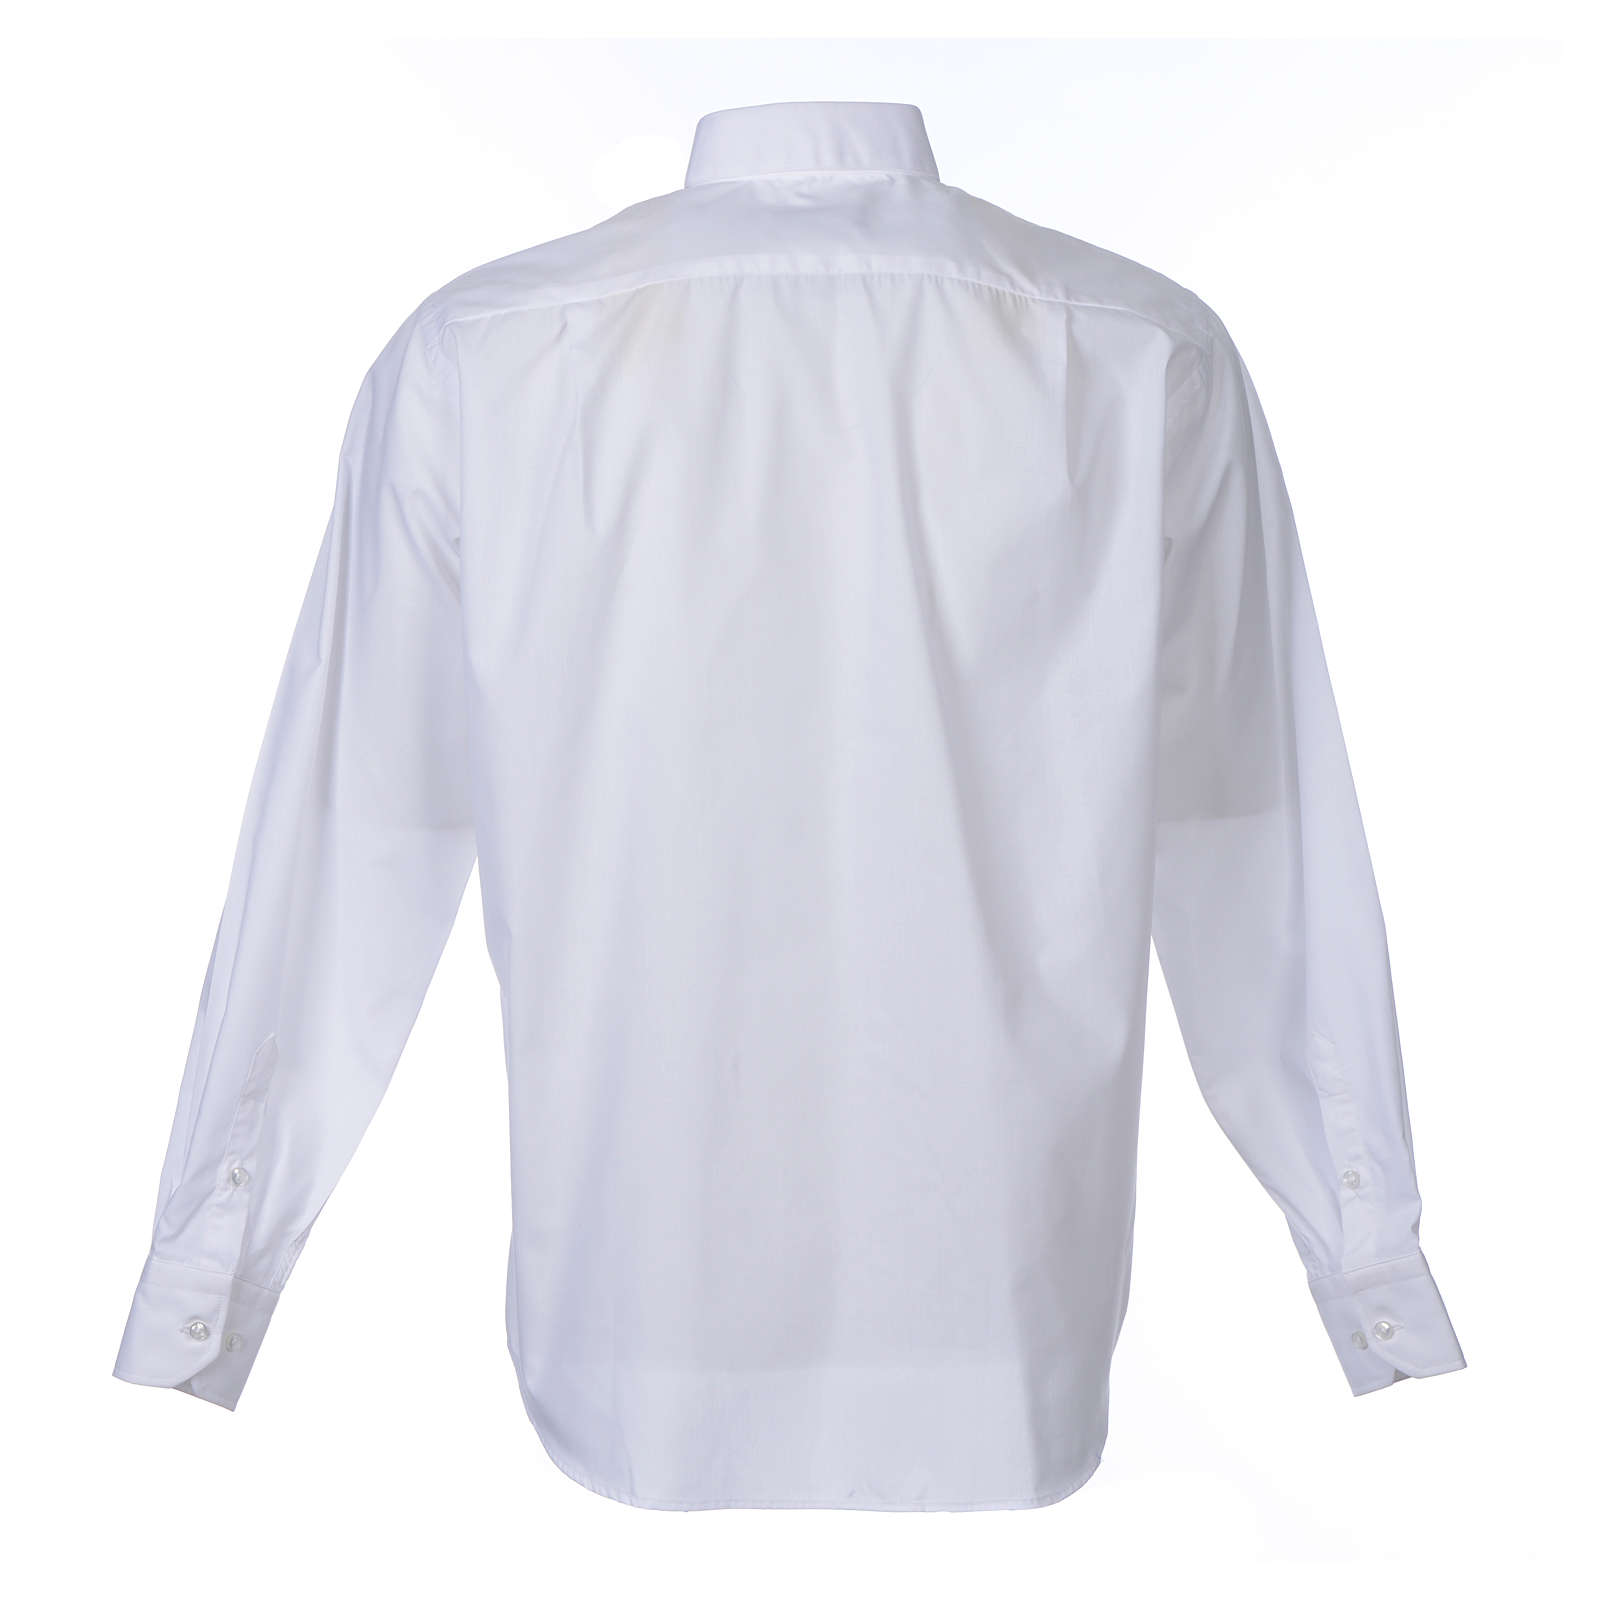 e6533a95aaeee Camisa Clergy Manga Larga Color Uniforme Mixto Algodón Blanco ...